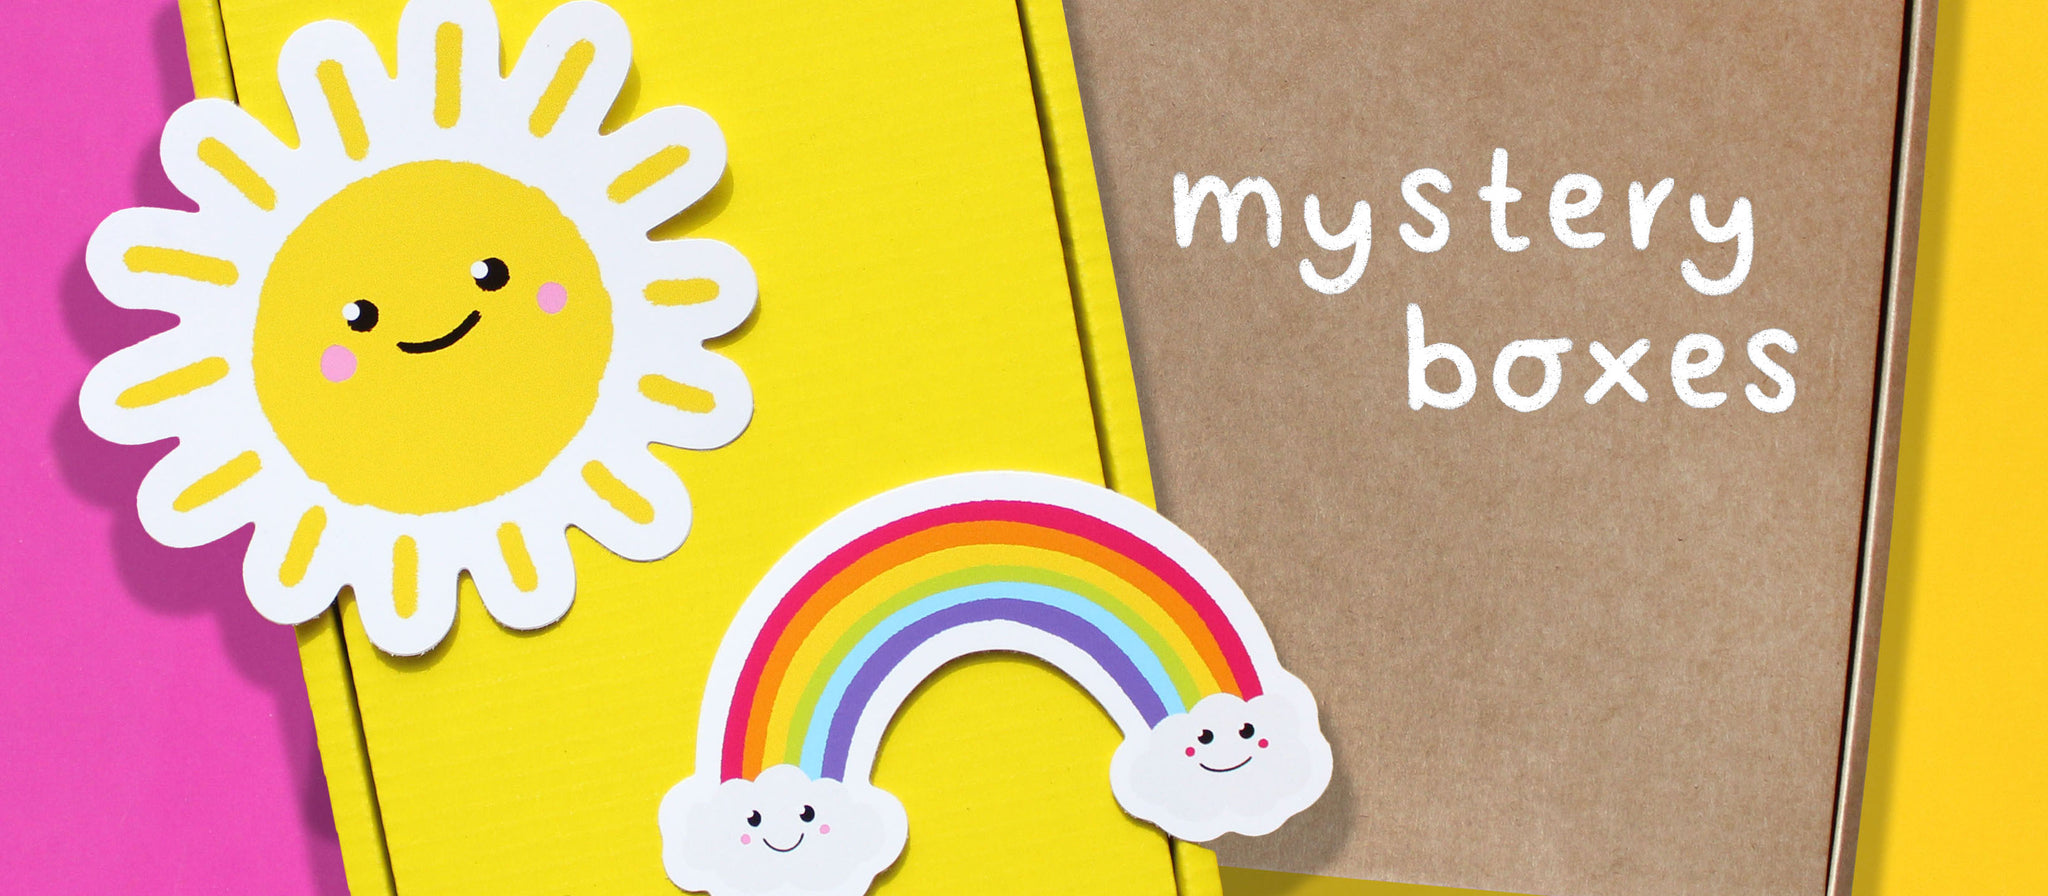 Novelty colourful mystery boxes for kids & adults, UK